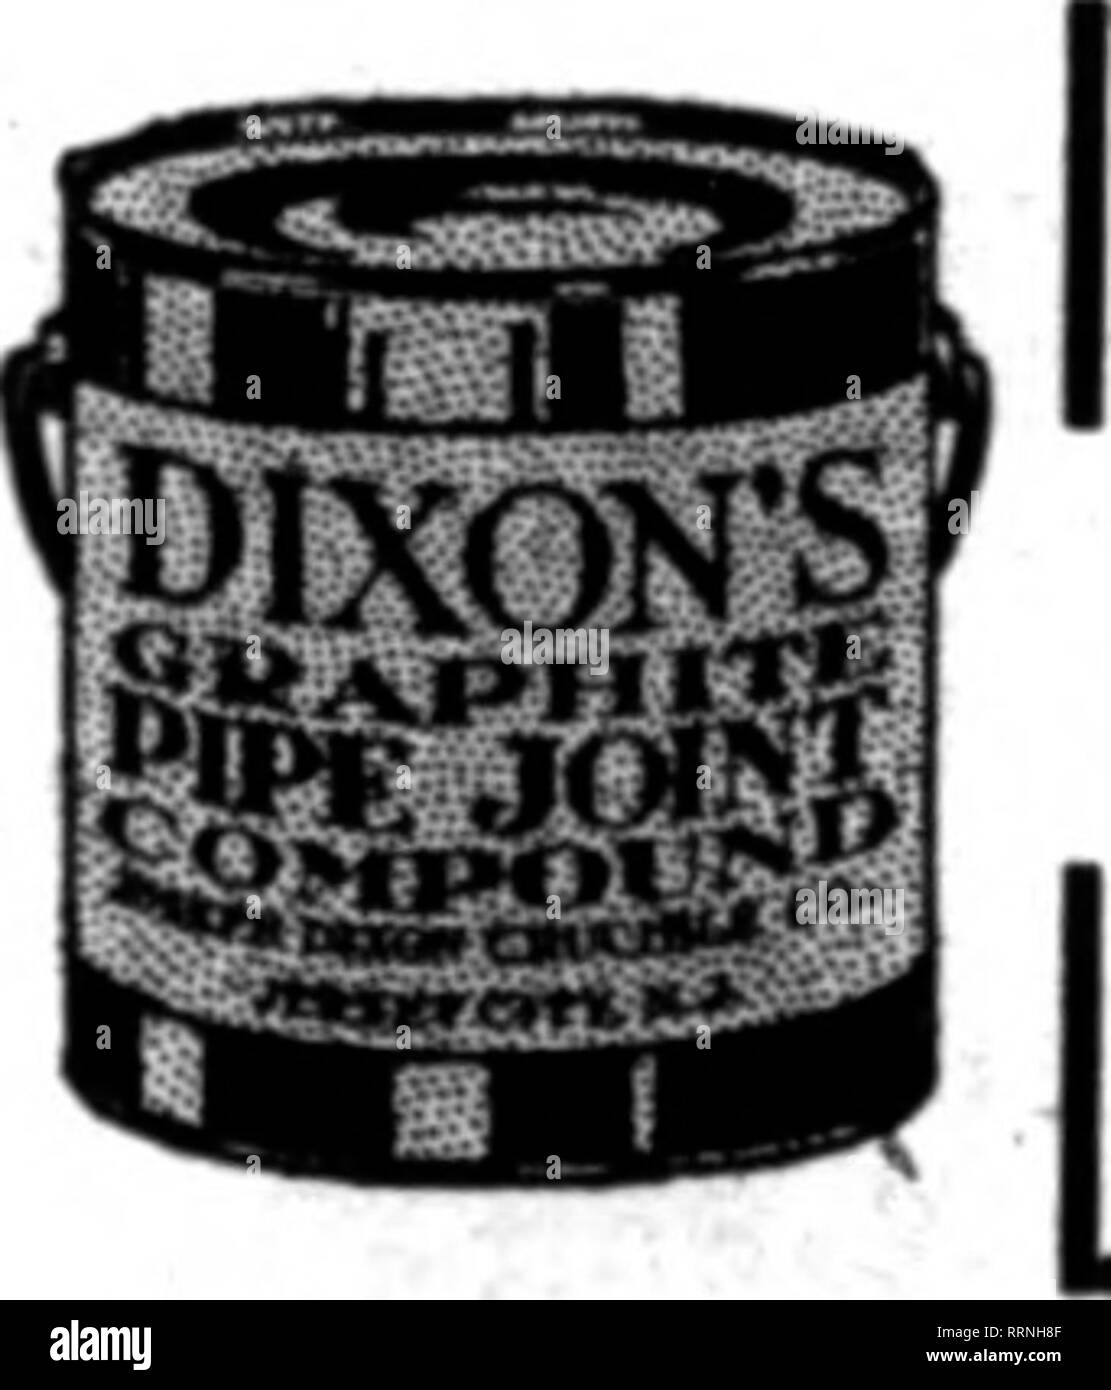 """. Florists' review [microform]. Floriculture. Mention The Review when yon write.. Dixon'sTGraphlte Pipe Joint Compound Saves time, money, temper and tools. Makes tiffhter joints. Never sets like a cement. Keeps joints well lubricated. Send tor t>ook- let No. M-G. Jote»h Dixsa Cnidbic Csmpaay Jersey City, N. J. Mention The Review when you write. Full Weight Wrought Iron and SpoHorhed Stool Plpo Coils, Bends, Railings, etc, made to Sketch FORD & KENDIG CO. nt?"""".S^^Sal*SrrLt. PHILADELPHIA Mention The Review when yon write. Tne HEATING PROBLEM SOLVED Jadliiit strictly aceardiat ts aMch - Stock Image"""